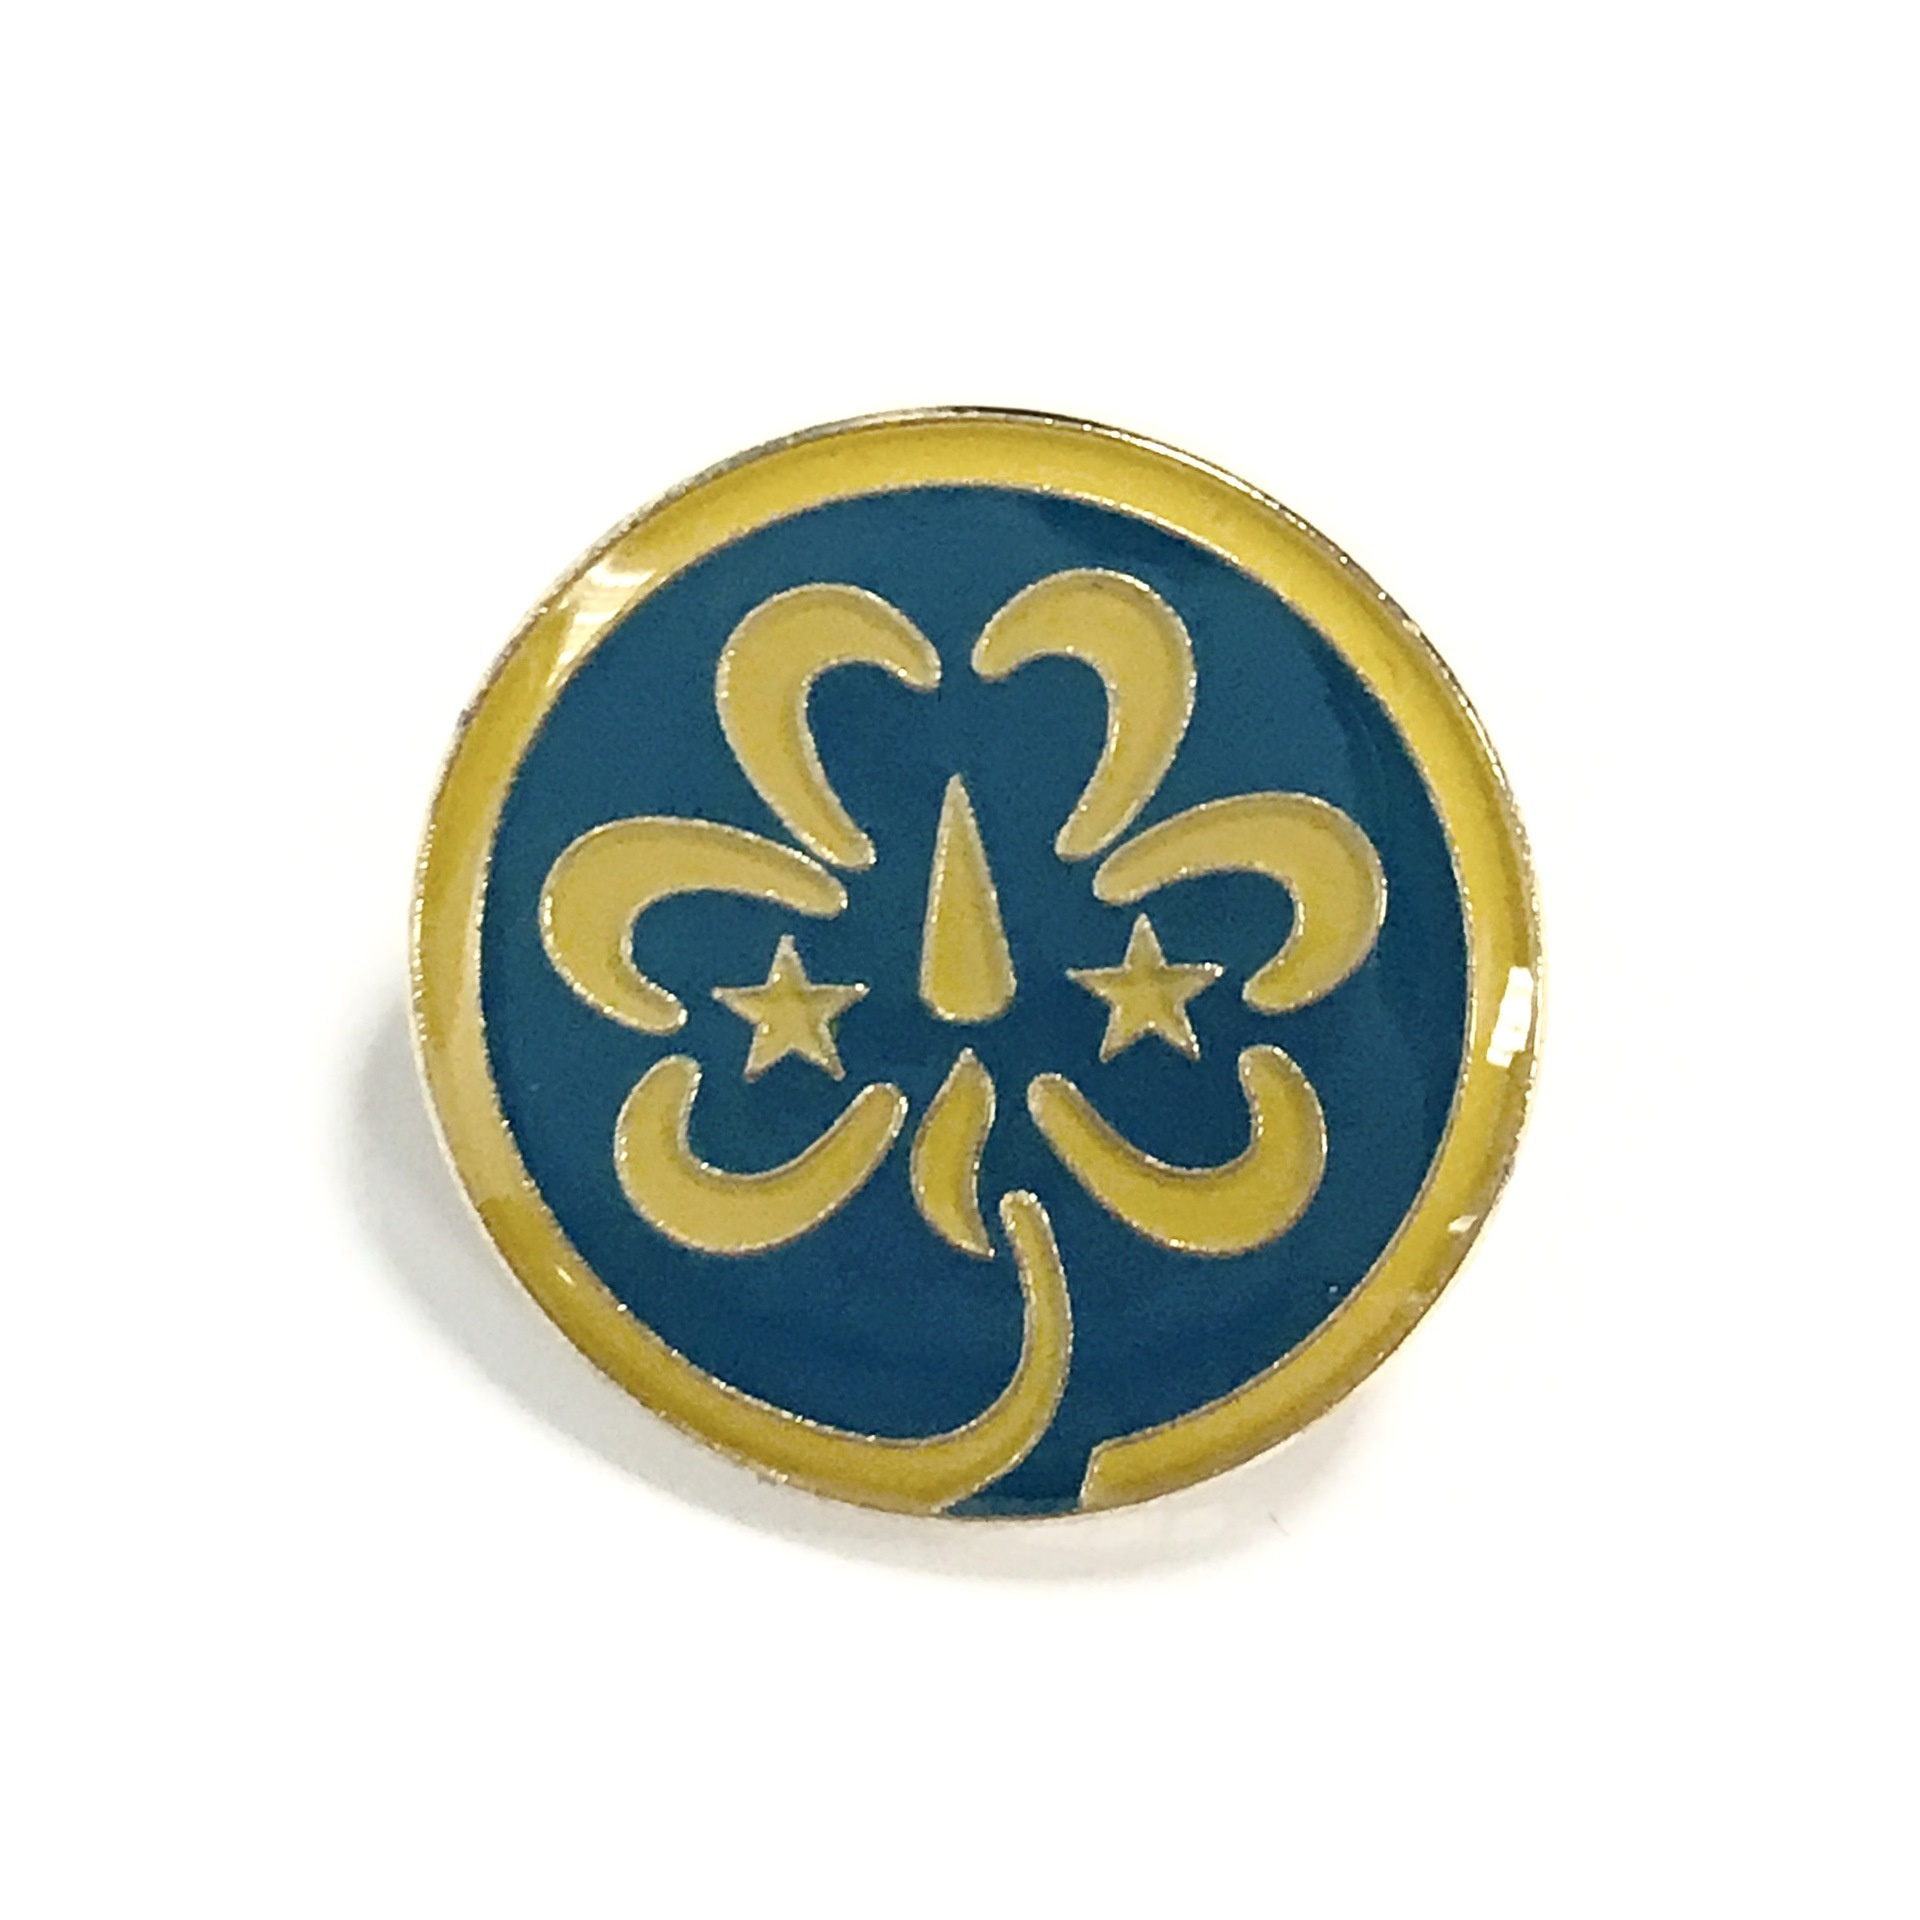 World Badge Girl Guides Victoria